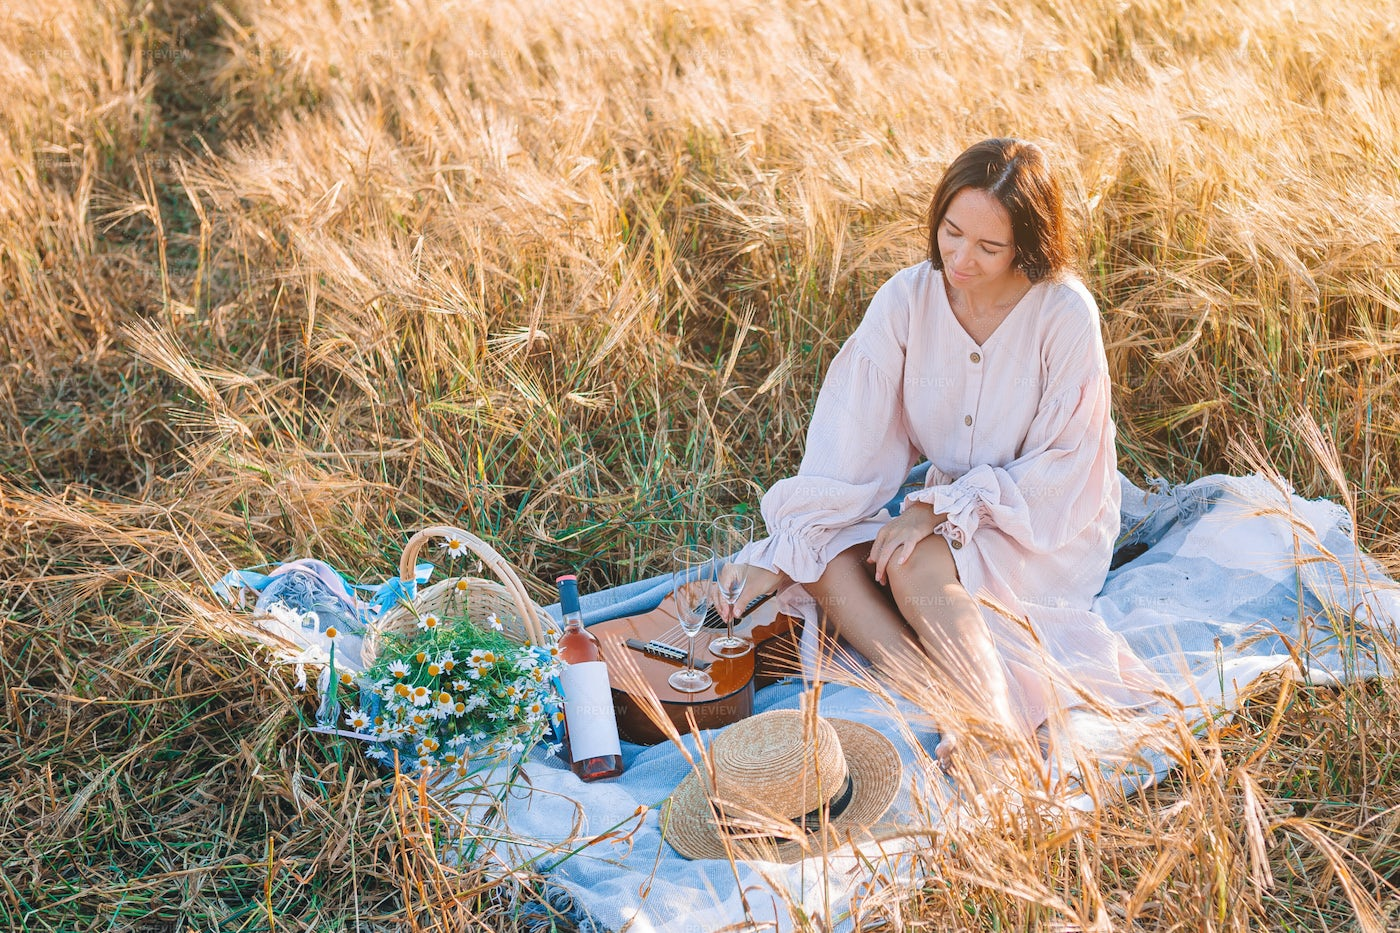 Wheat Field Picnic: Stock Photos